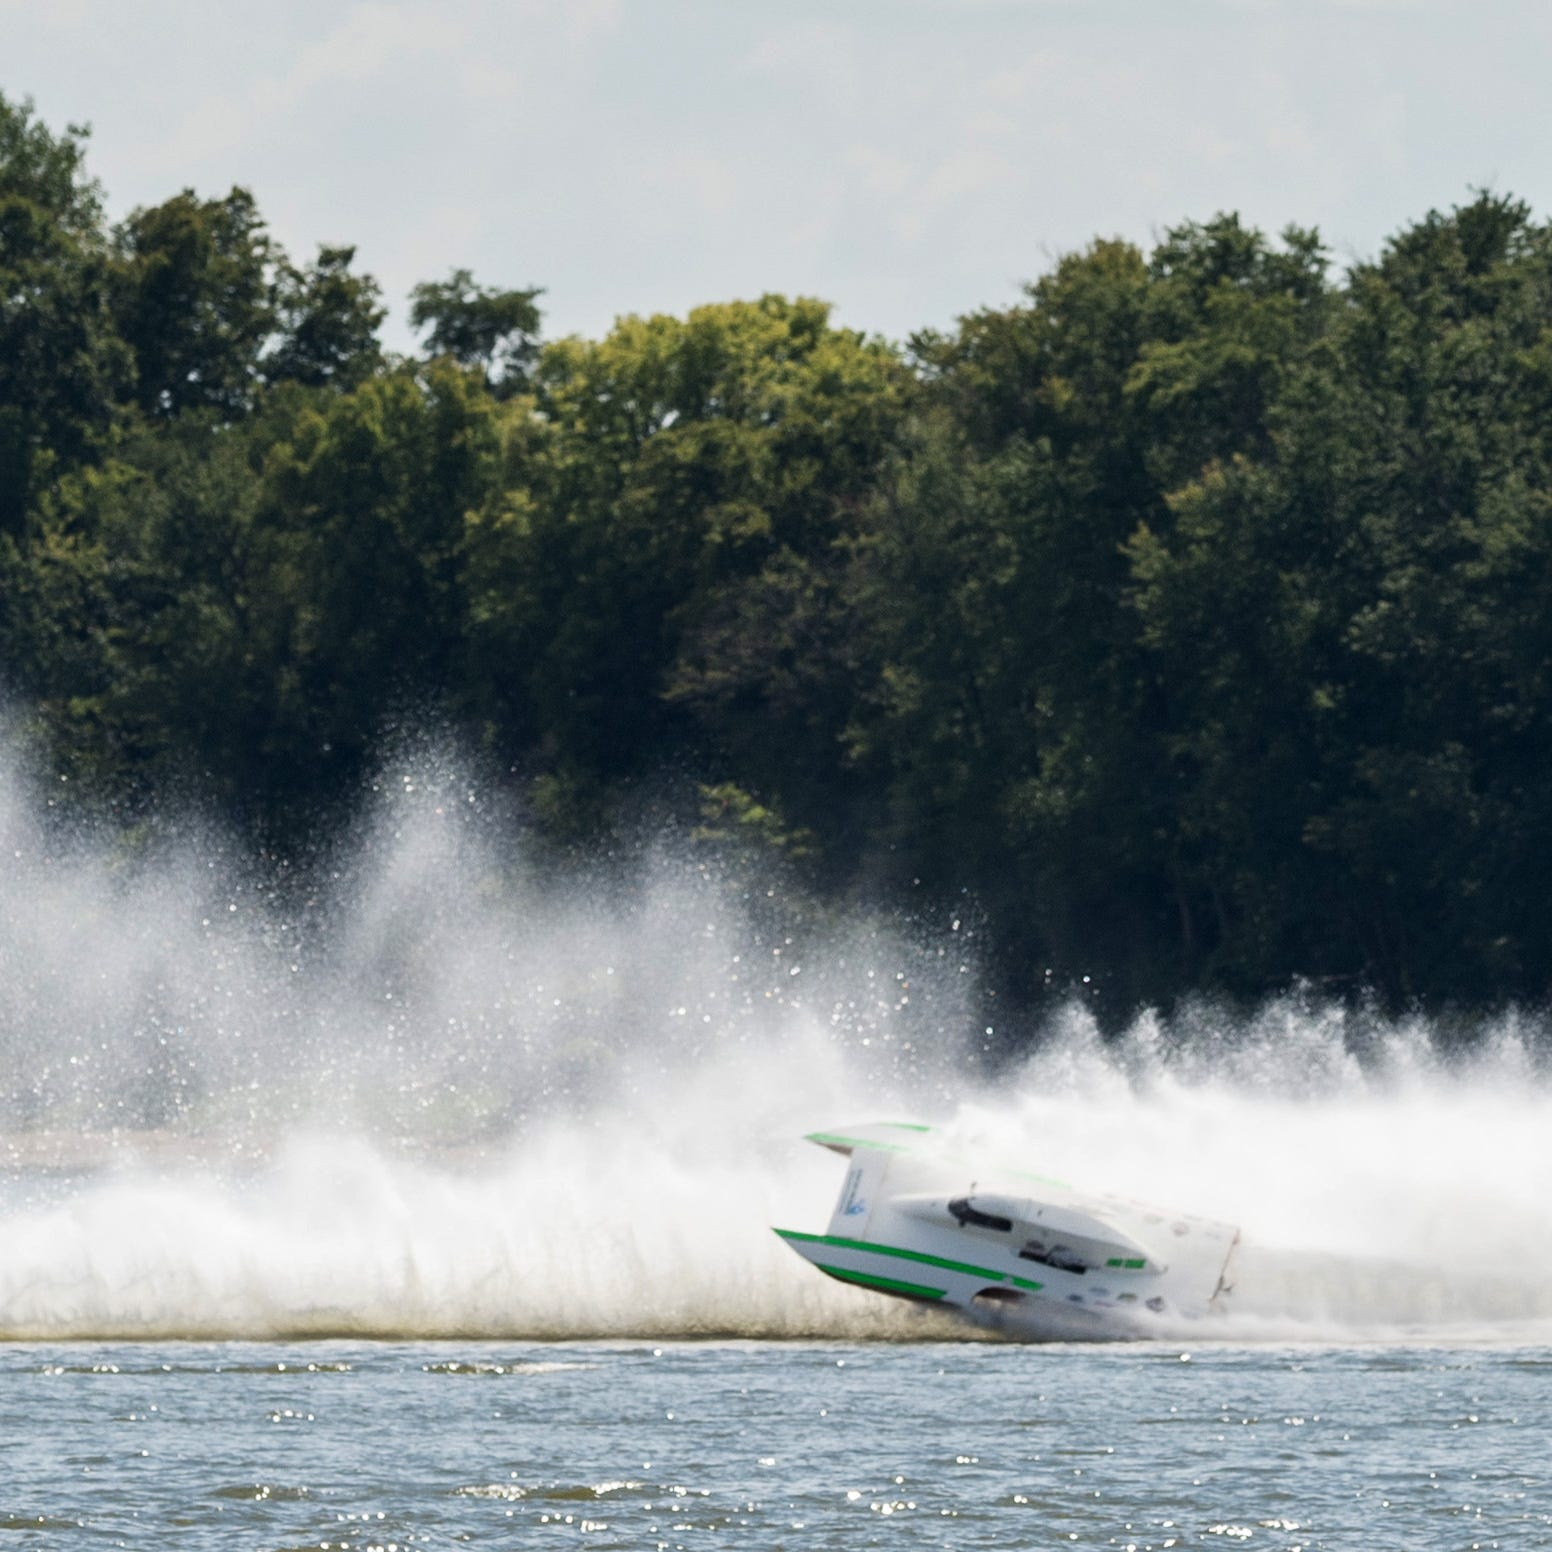 Visitors Bureau director recommends hydroplane racing in Evansville be nixed